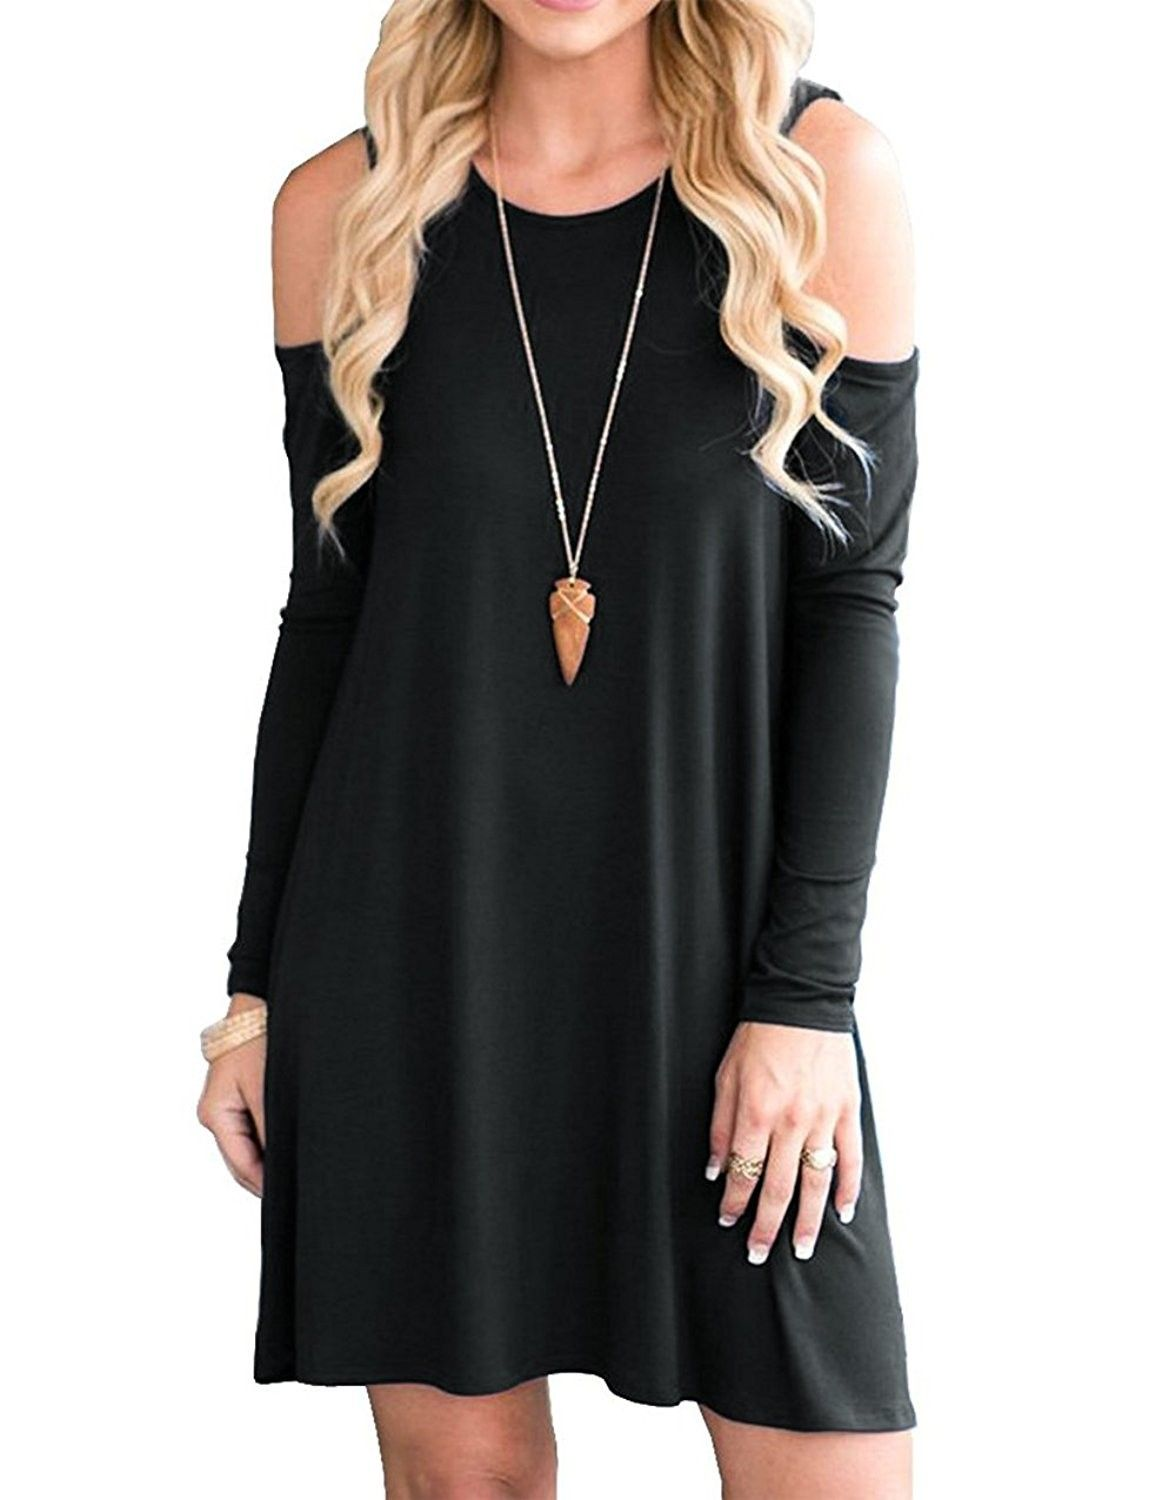 Women S Clothing Dresses Casual Women Long Sleeve Casual Dresses Pockets Cold Shoulder Loose T Shirt D Swing Shirt Dress Loose Dress Cold Shoulder Tunic Top [ 1500 x 1176 Pixel ]